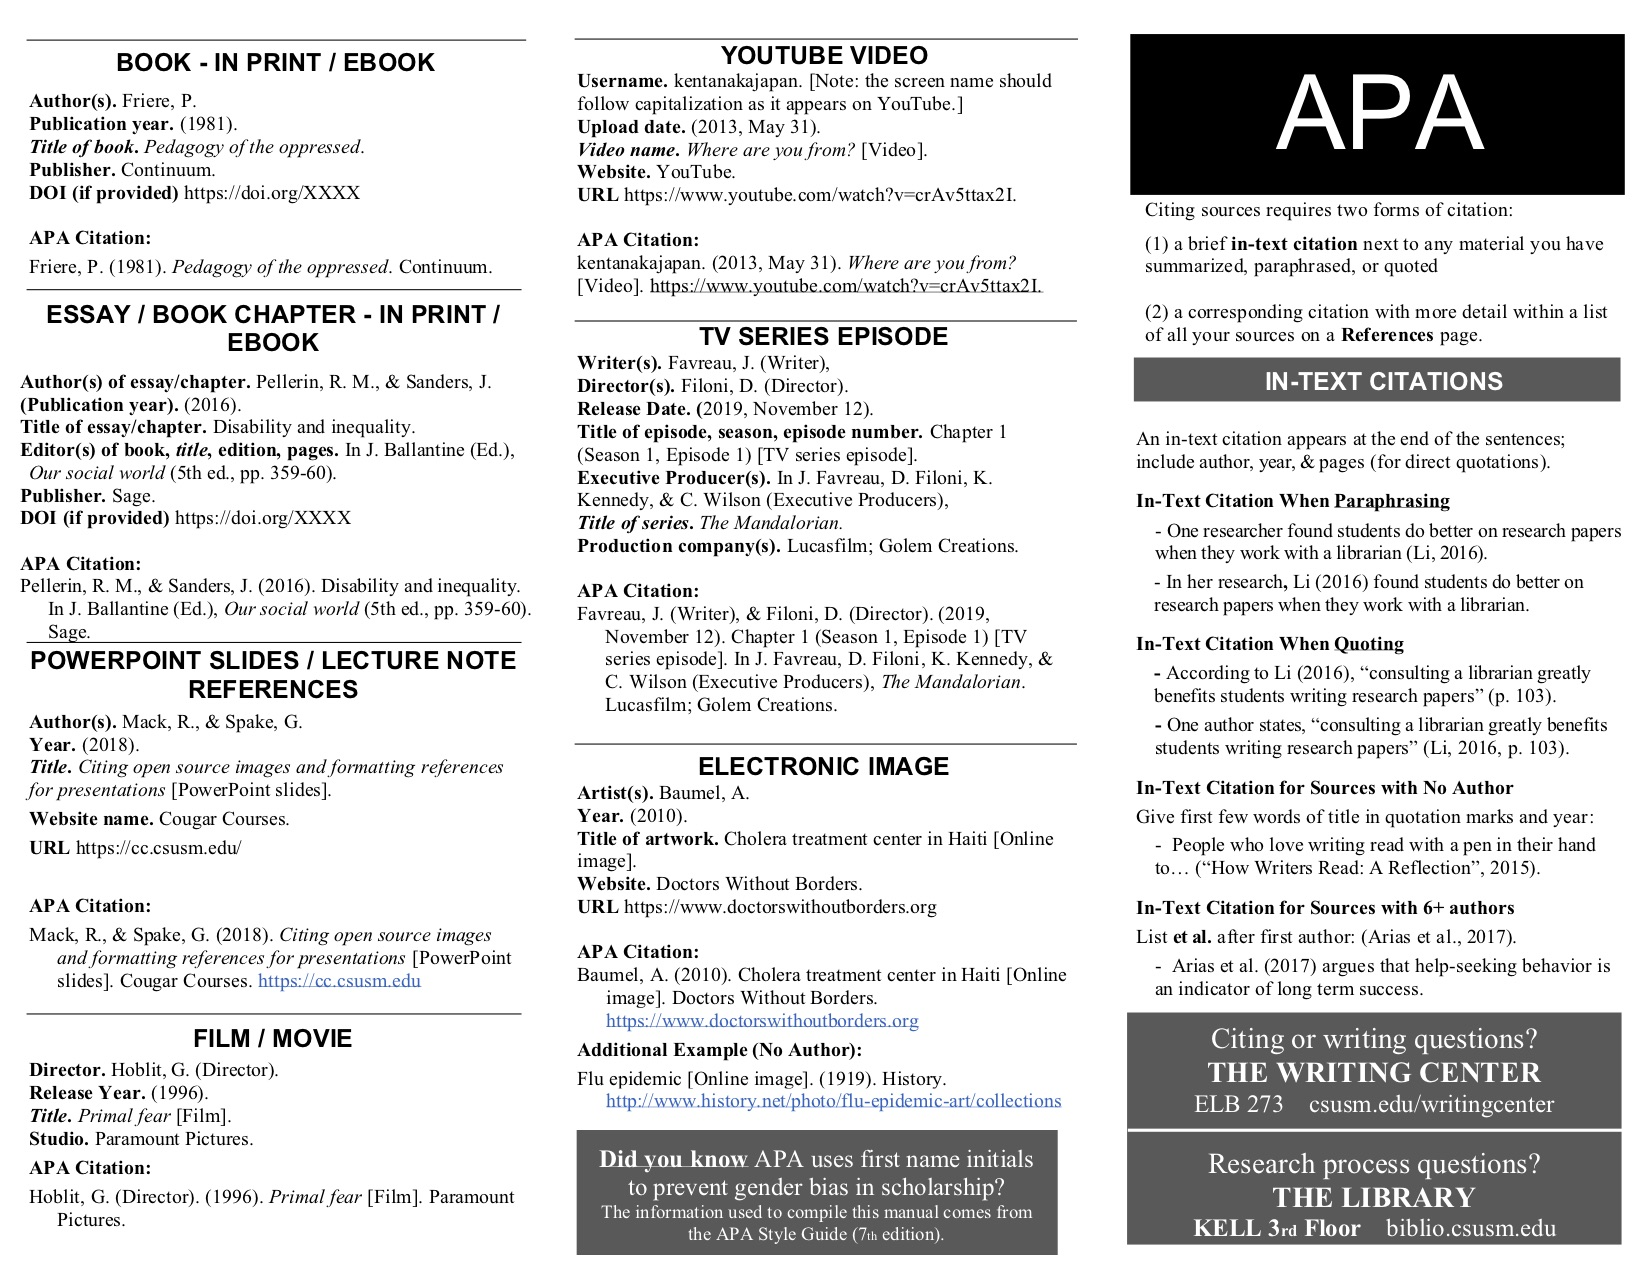 Image of APA tri-fold handout used for helping you craft commonly cited sources